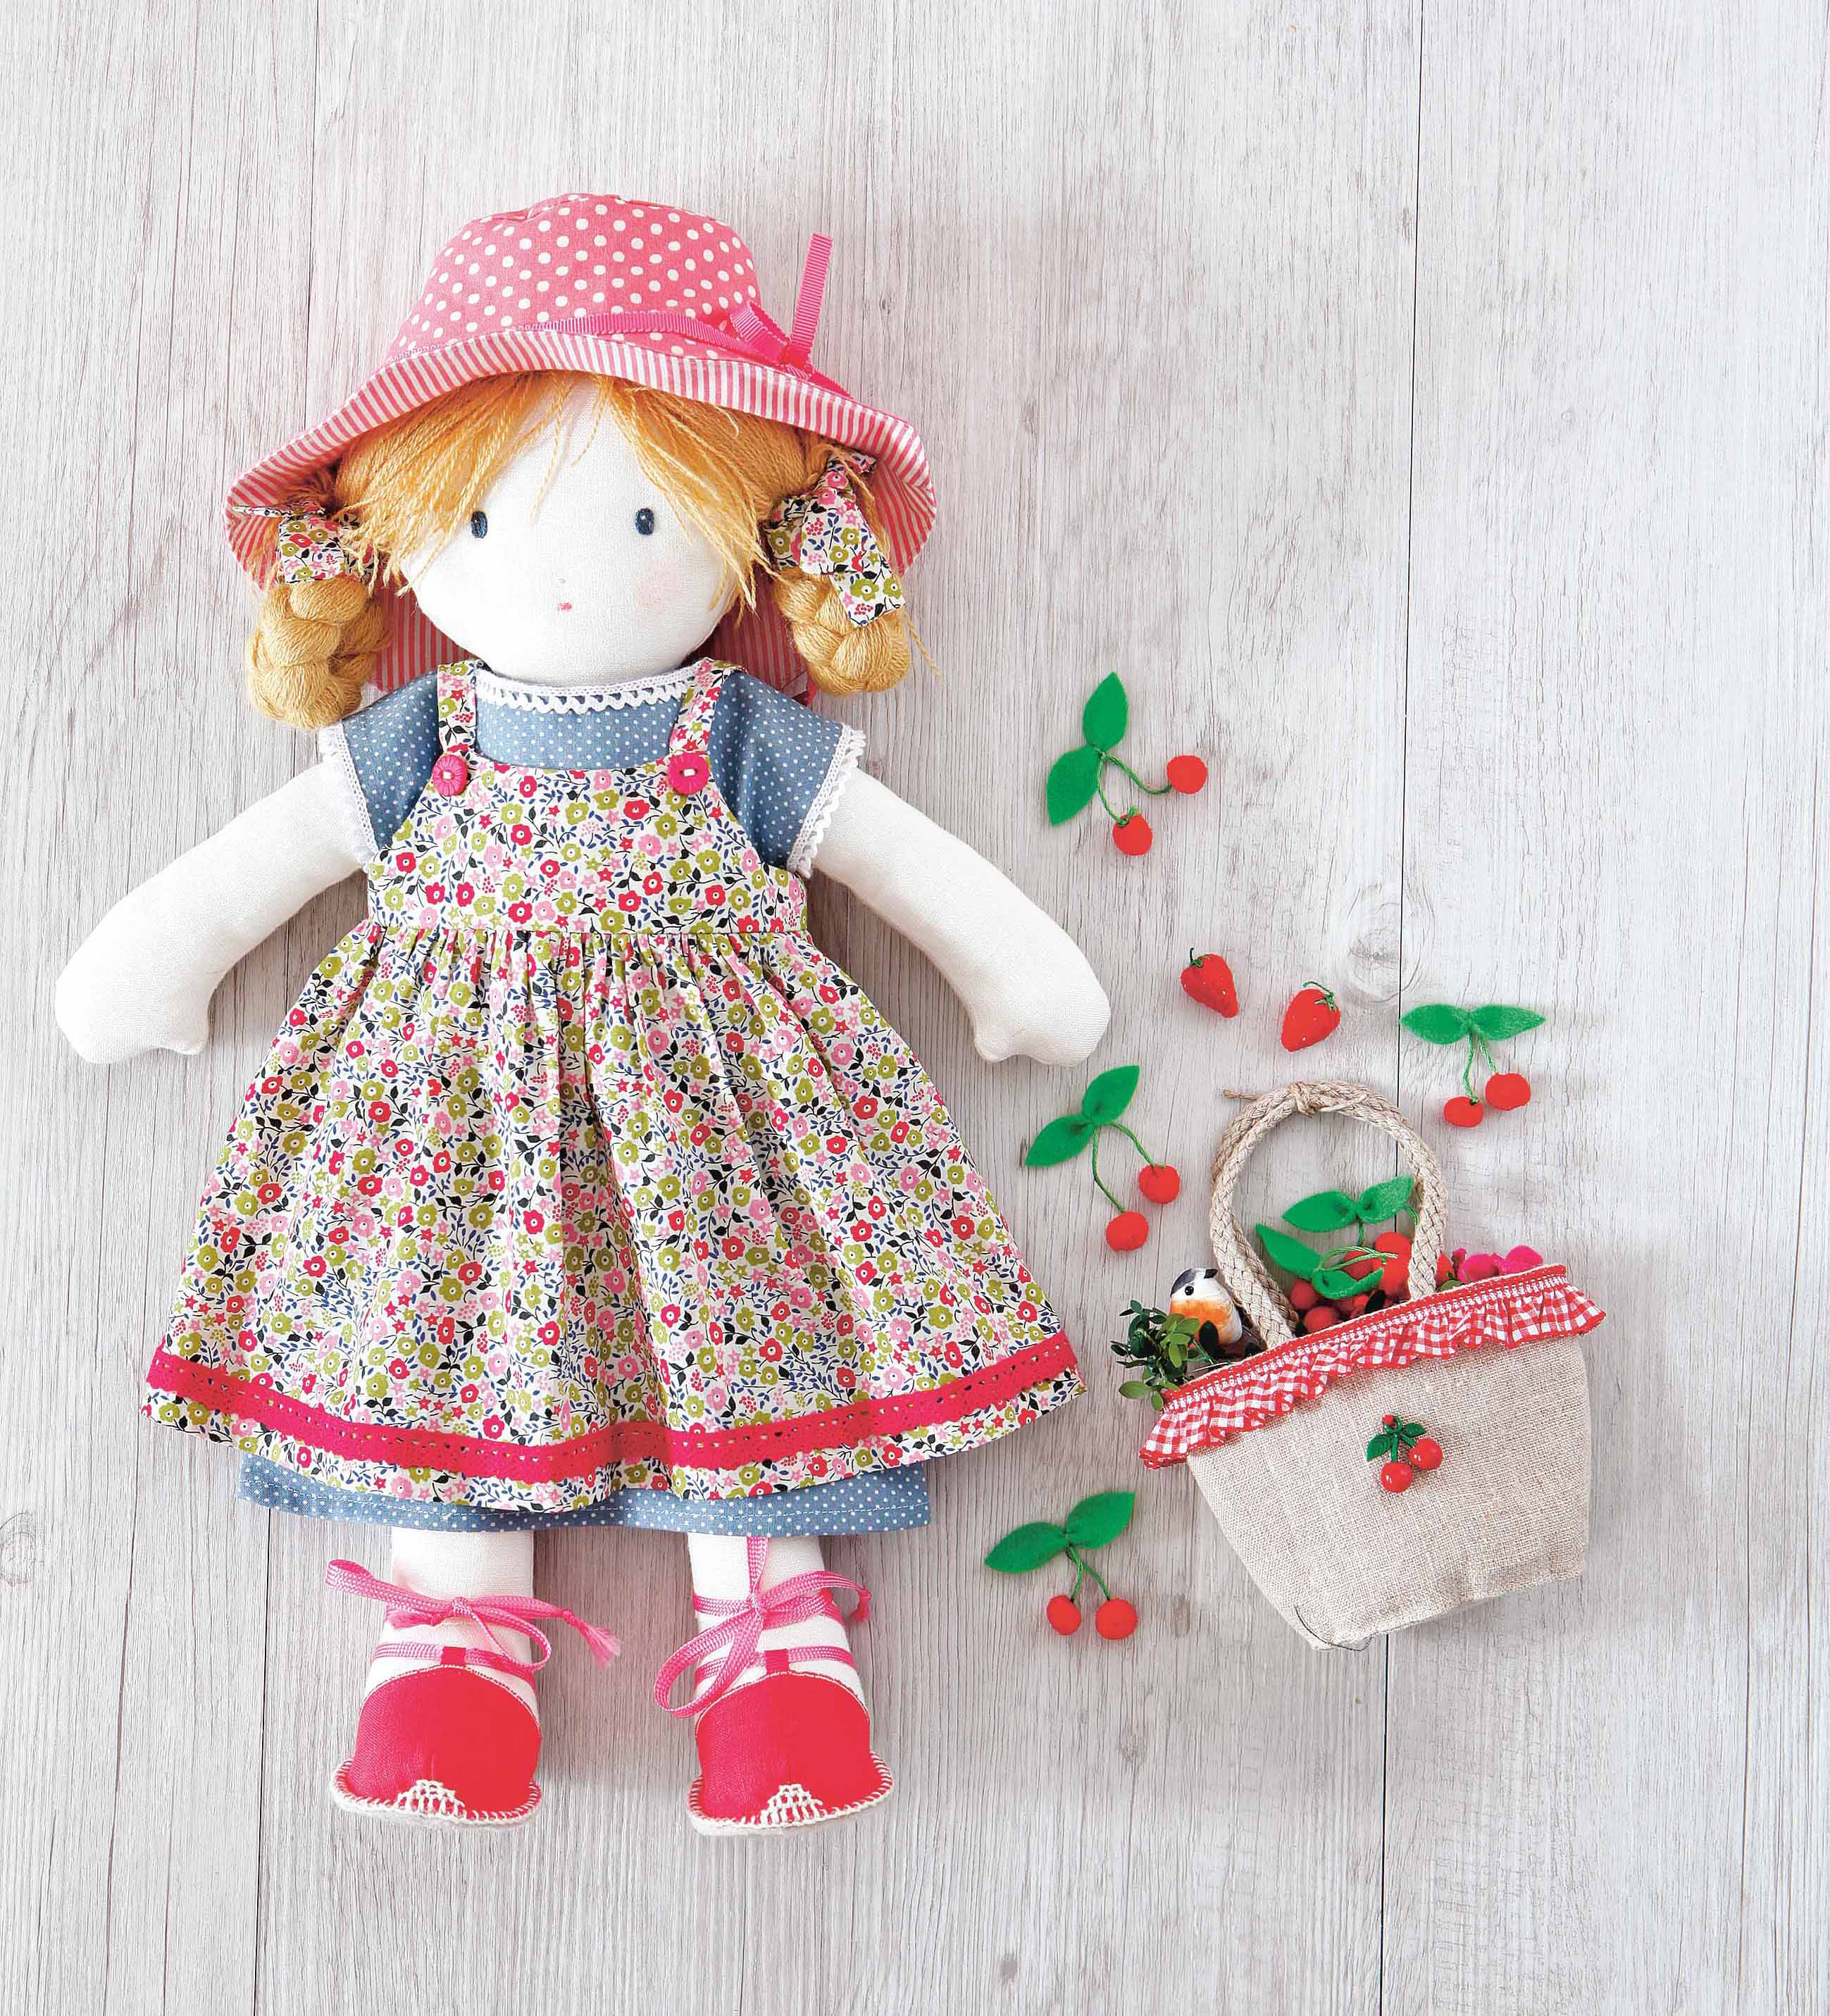 Doll Patterns Best Of My Rag Doll Adorable Dolls to Sew Of Doll Patterns Luxury Dolls Patterns Free Free Patterns